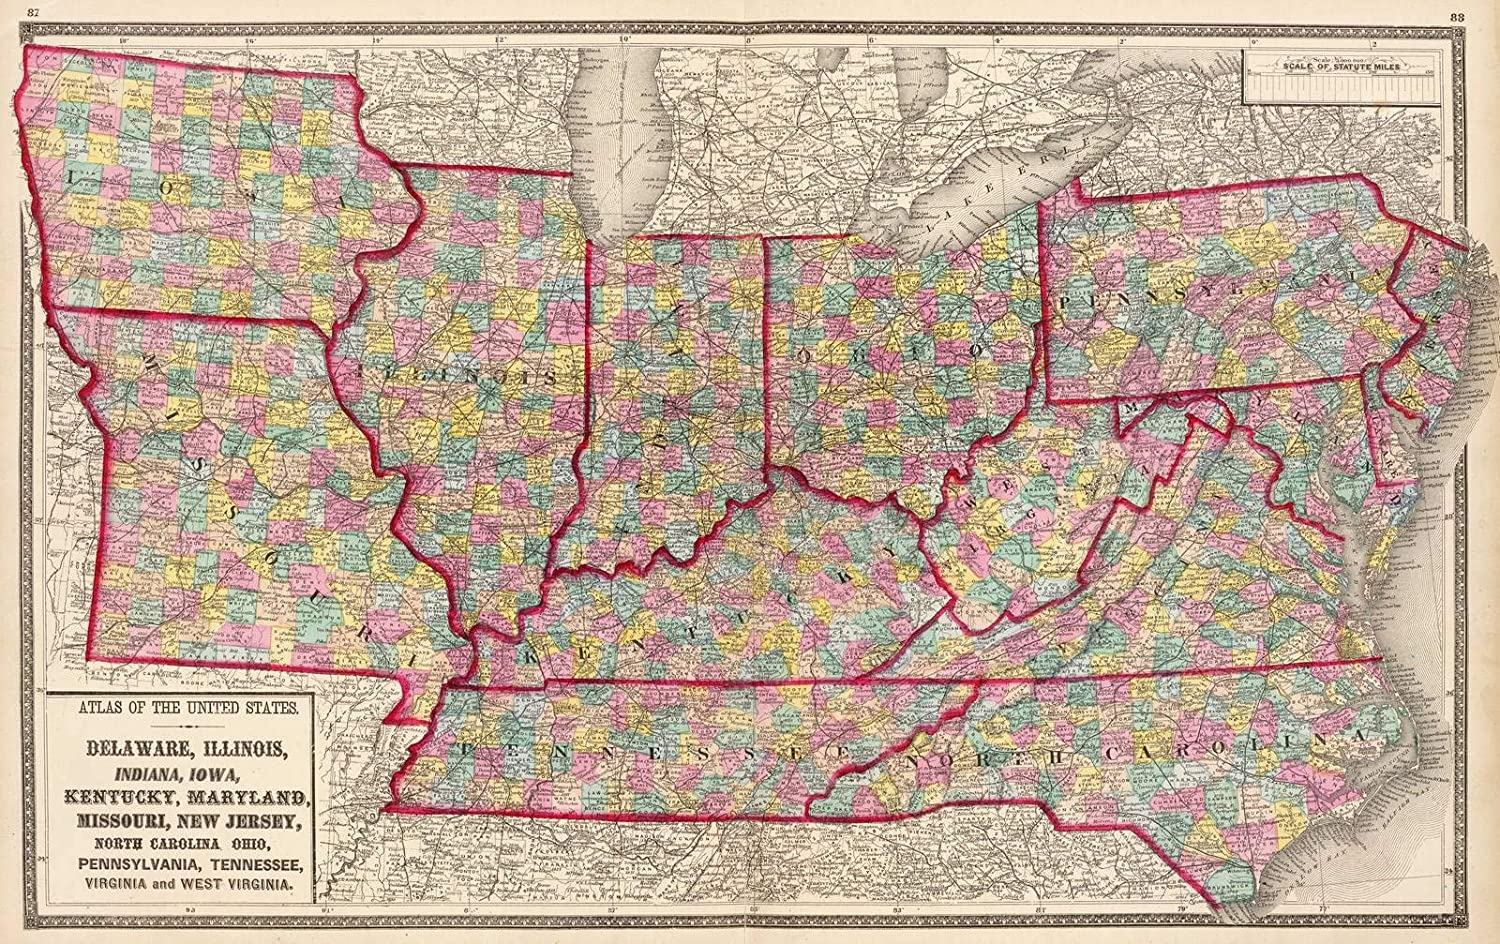 Amazon.com: Historic Map   Delaware, Illinois, Indiana, Iowa ... on map of illinois cities, map of west virginia and tennessee, map of iowa freedom rock in the tour, map of iowa small towns, iowa state map illinois, map of bridges of madison county iowa, map of iowa online, map of quad cities and surrounding area, map of dubuque iowa, map of church camps in illinois, big map of illinois, map of iowa casinos, street map clinton illinois, map of quincy illinois, map of iowa print, map of missouri, map of the state of iowa, oakland city hall illinois, map of minnesota iowa border, map of iowa counties,